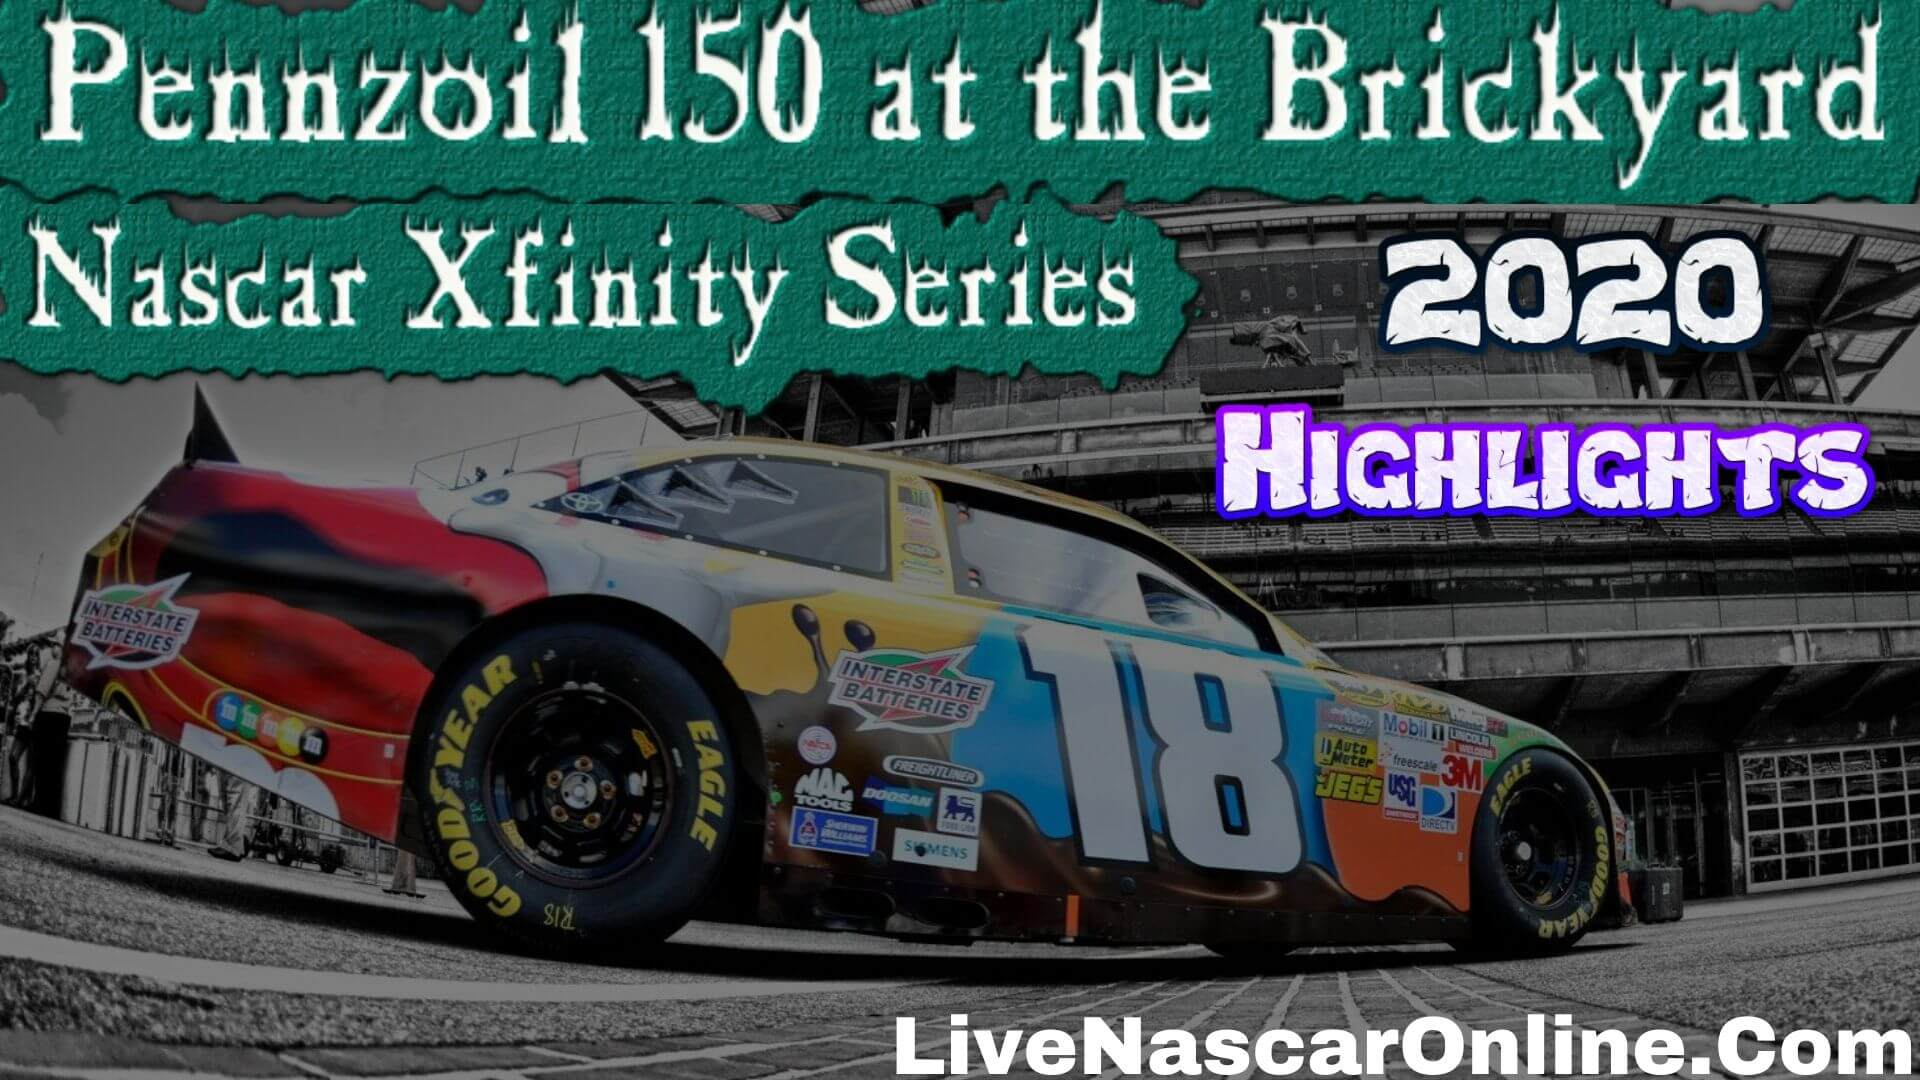 Pennzoil 150 at the Brickyard Xfinity Series 2020 Highlights